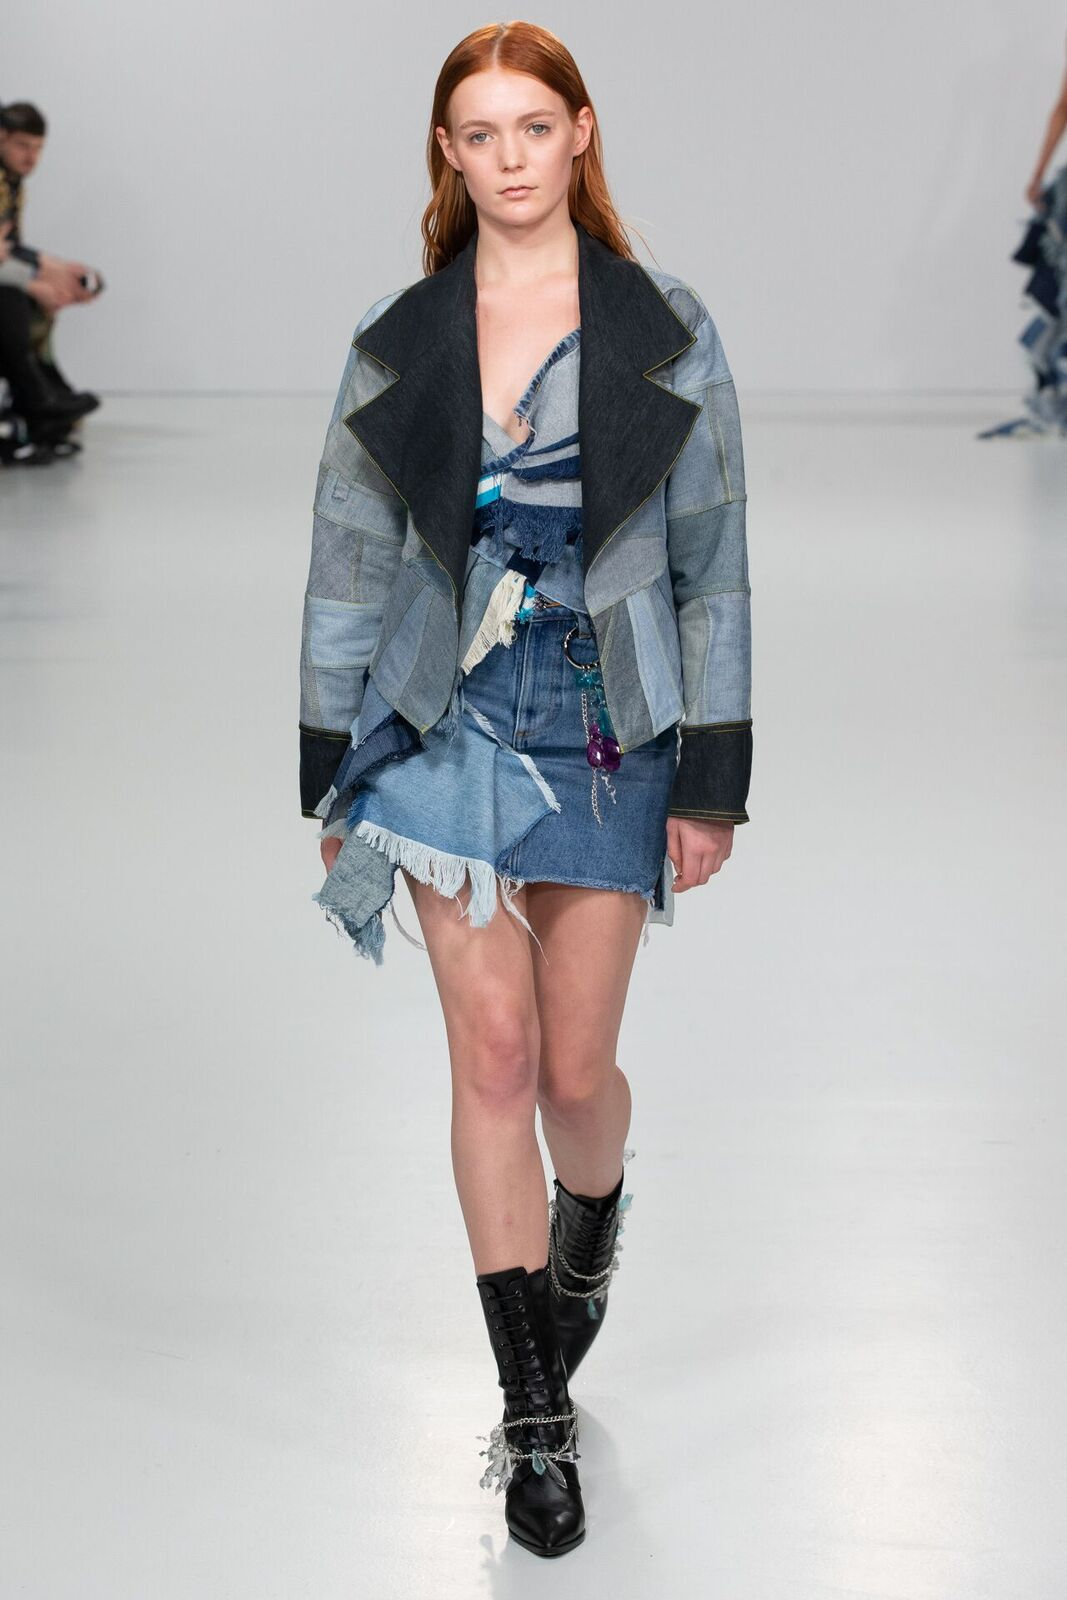 Manon planche aw20 during london fashion week (4)